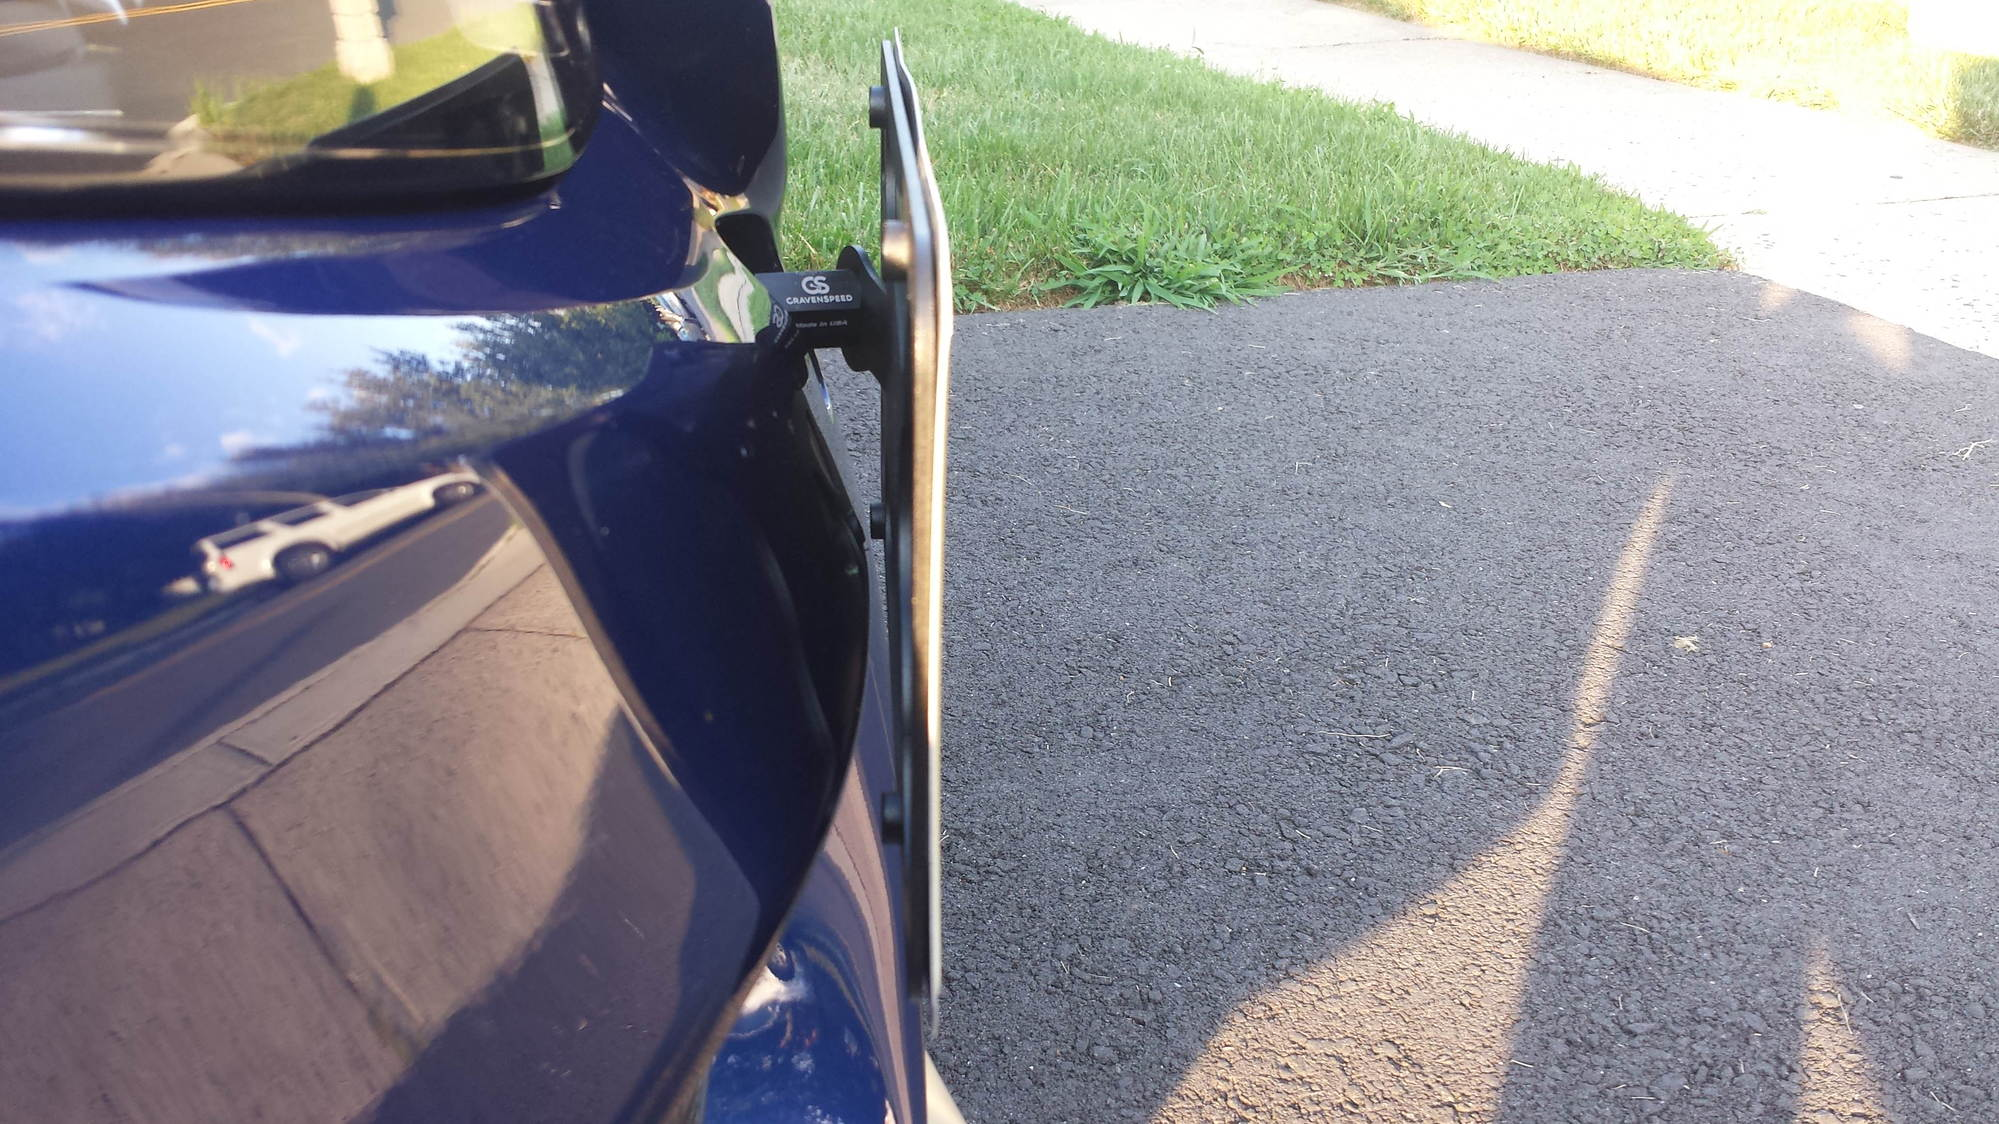 Way to mount front license plate - MBWorld org Forums